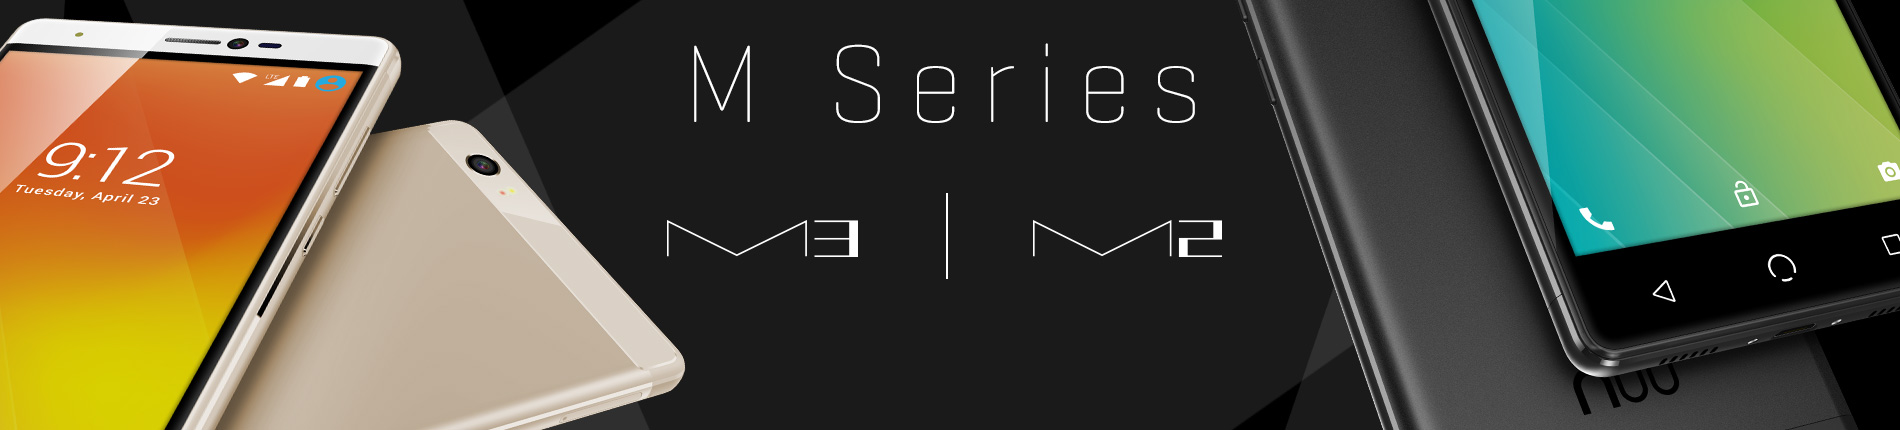 M Series Android Phones